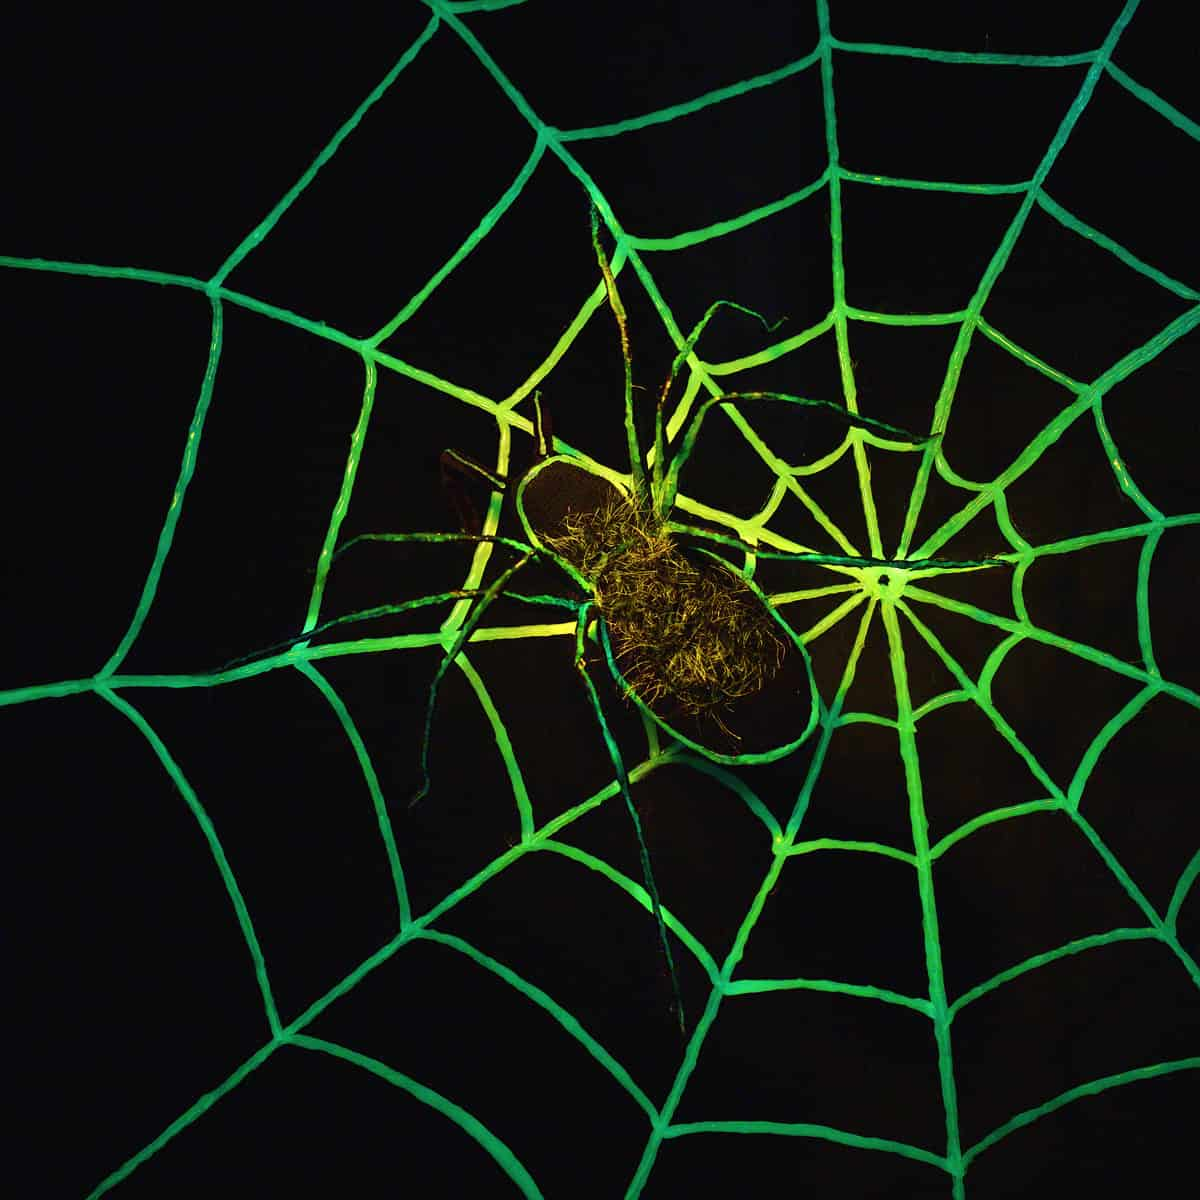 Diy glow in the dark spider web